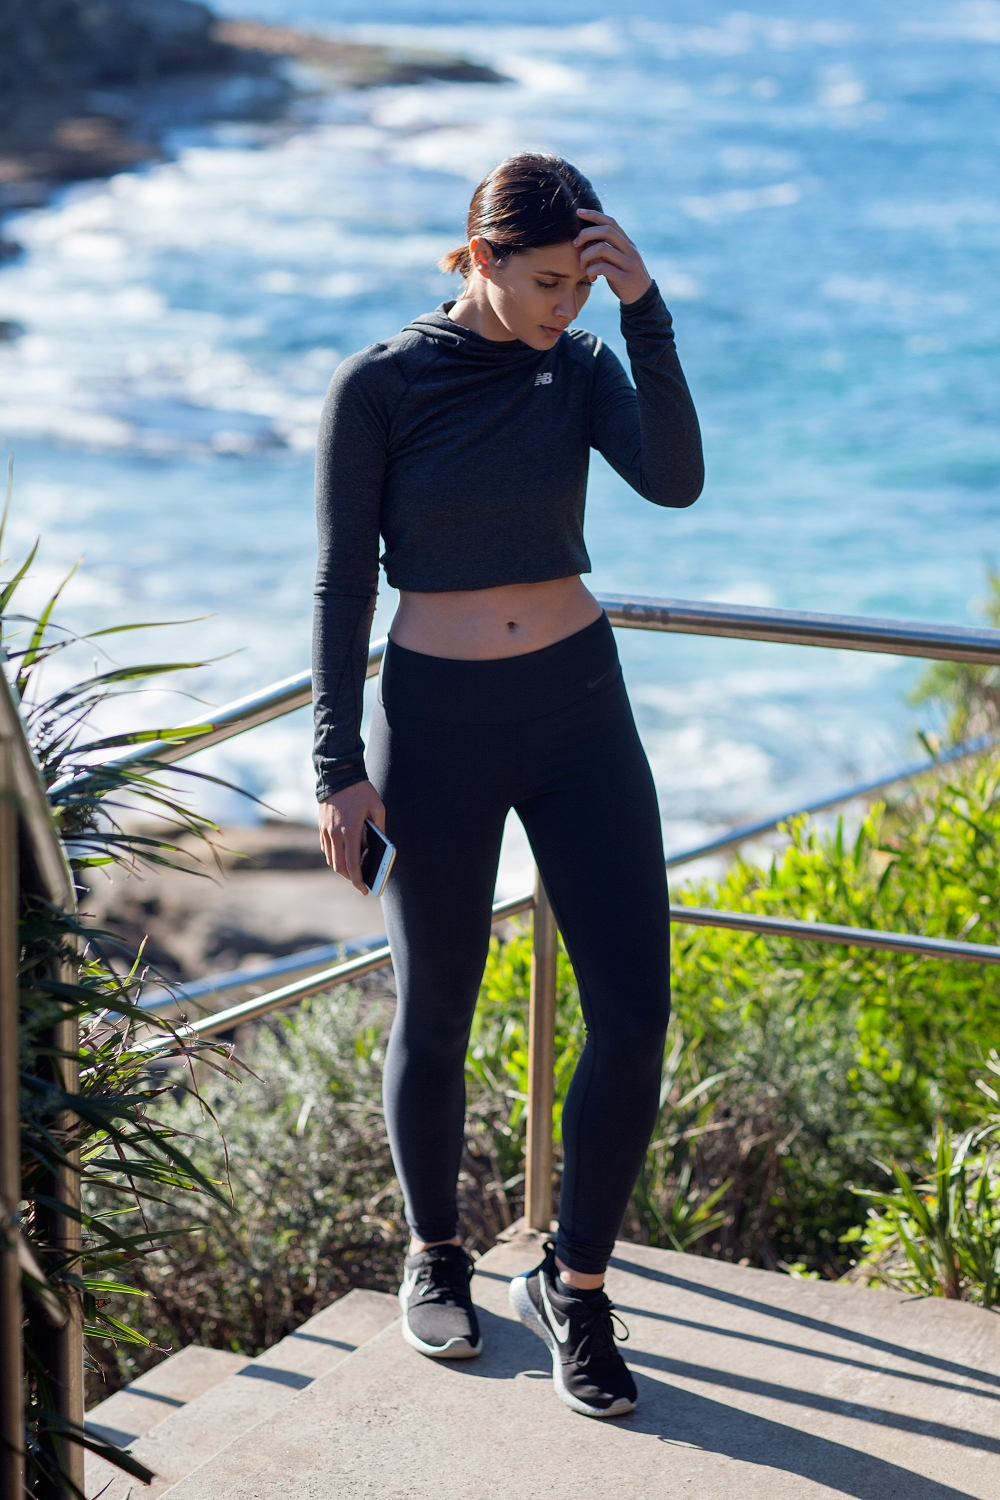 harper-and-harley_sara-donaldson_activewear_health_workout_gym_New-Balance_Nike_1